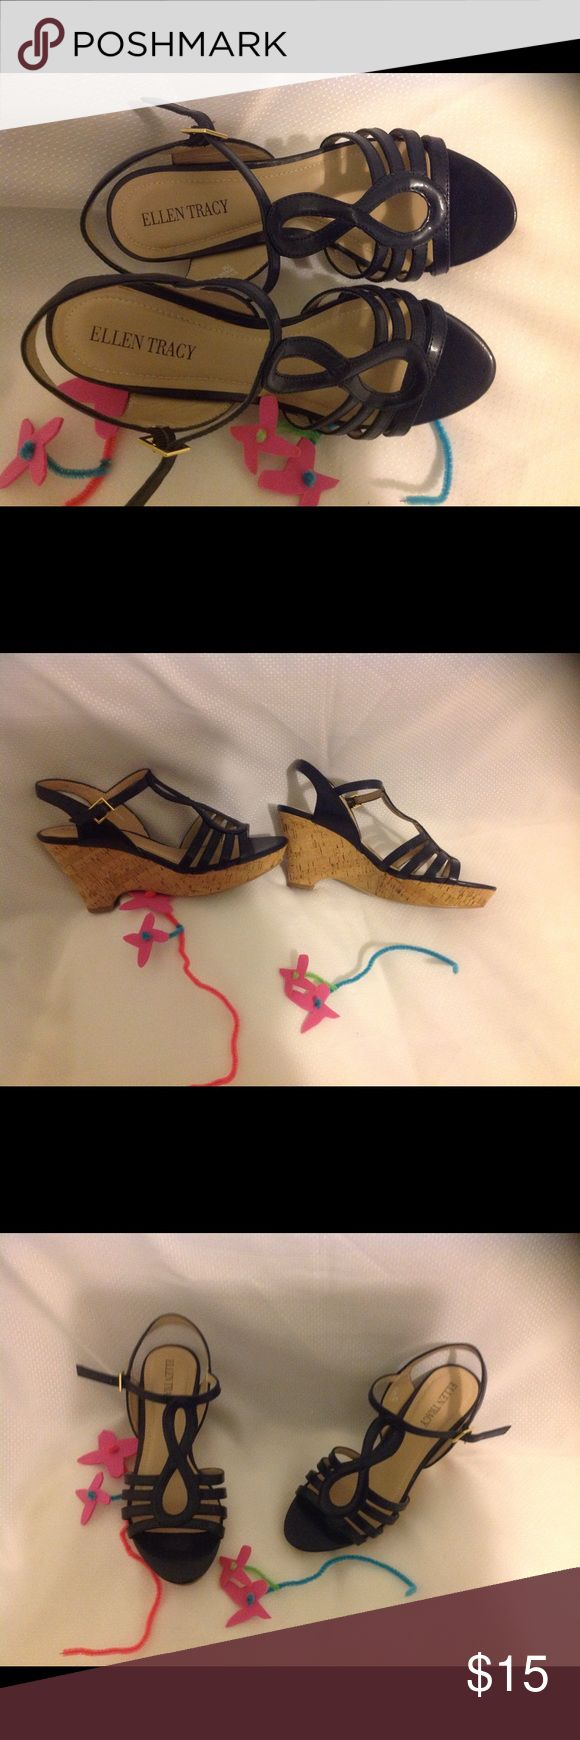 Ellen Tracy ladies shoes Cork wedge. Closure on side.  Used but in excellent condition. Color more like navy blue. Medium width. Ellen Tracy Shoes Wedges